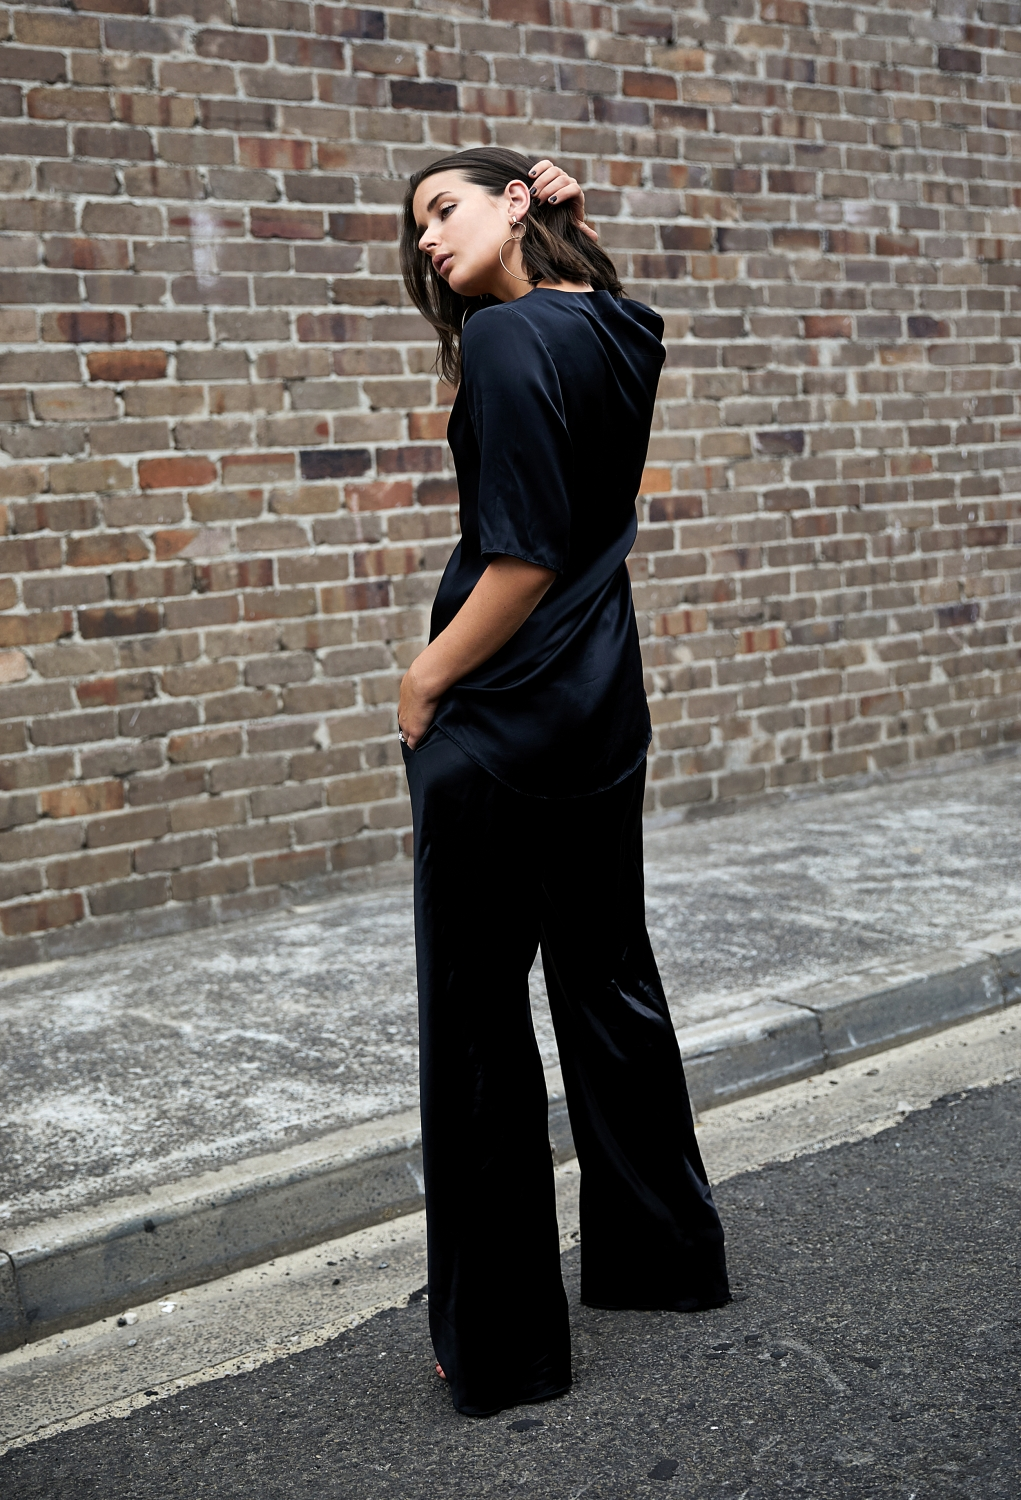 Silk top and pants | black | outfit | style |HarperandHarley